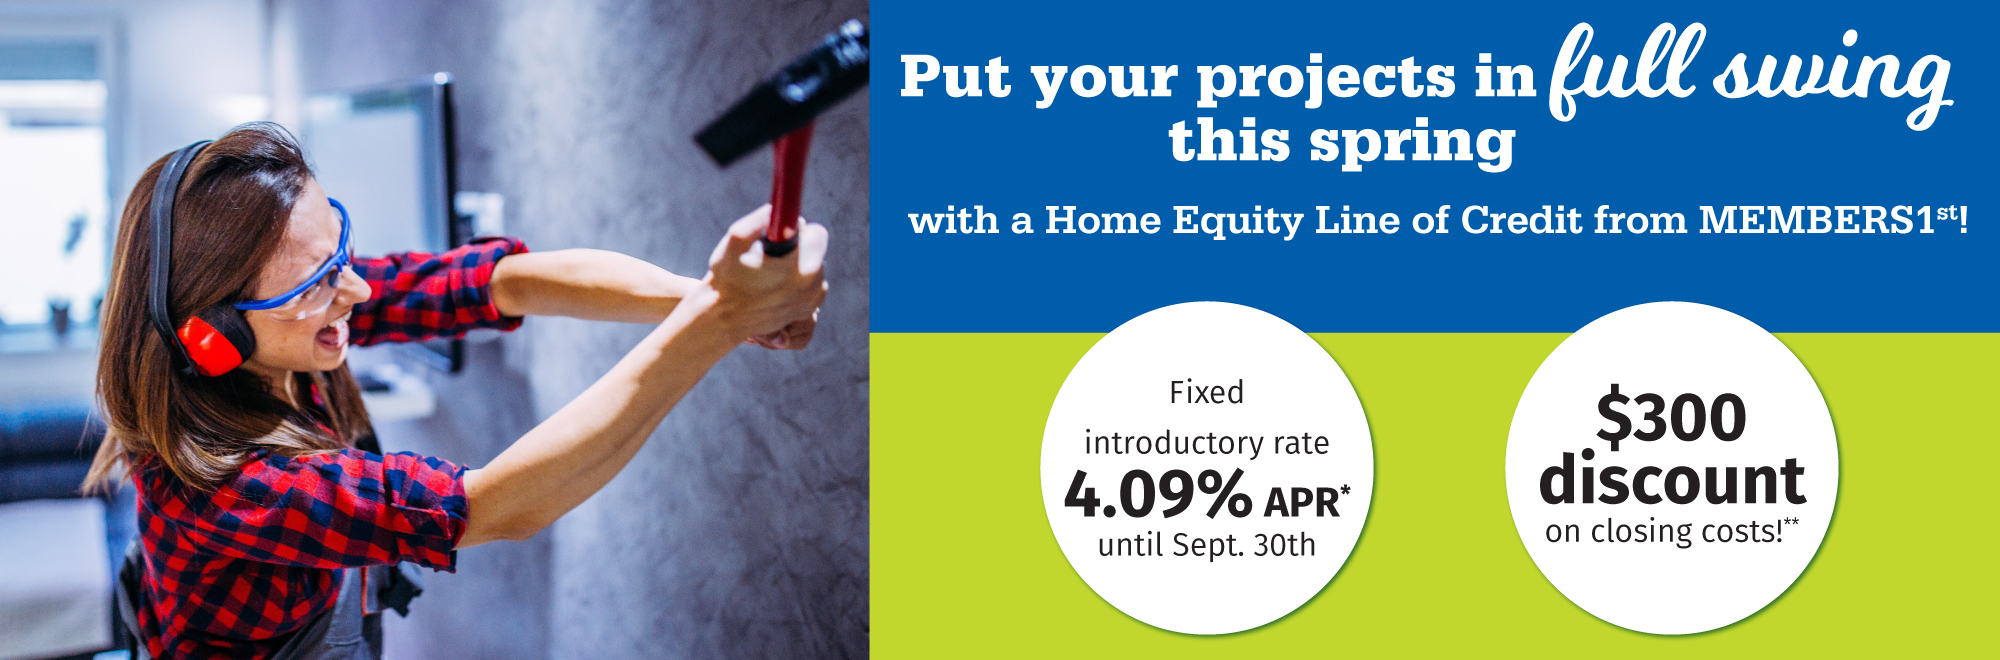 Put your projects in full swing this spring with a home equity line of credit from members1st!